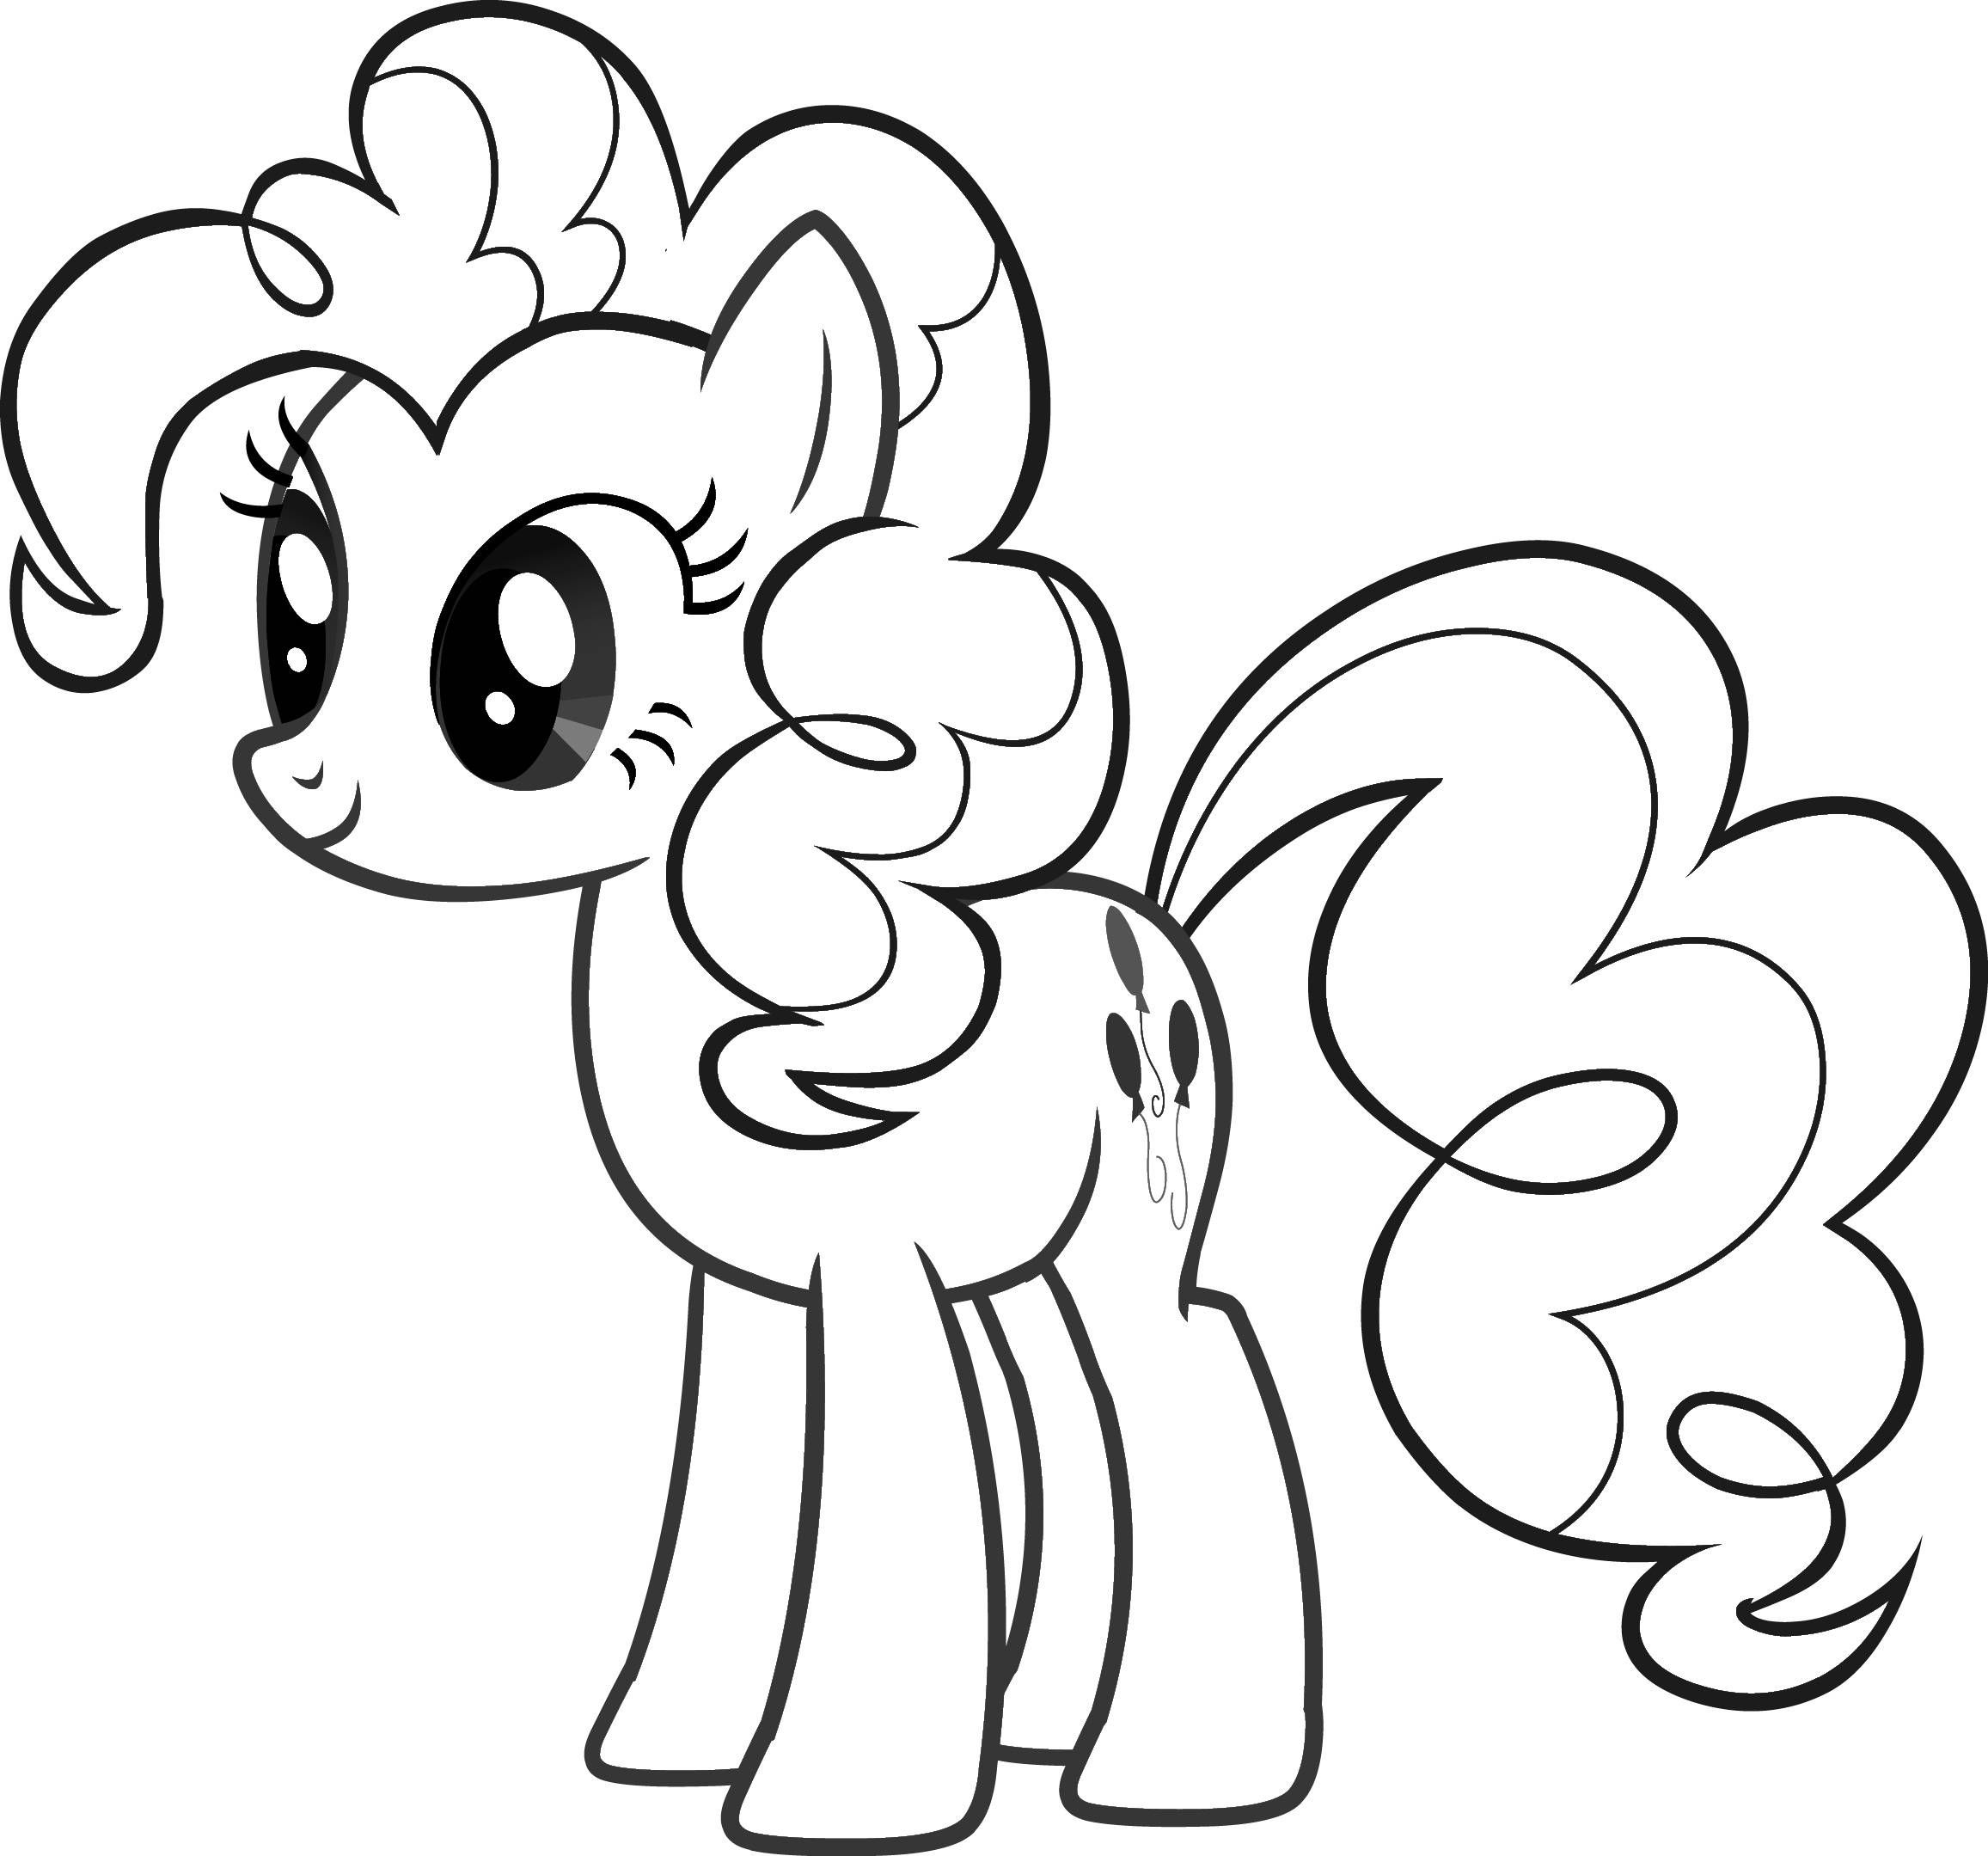 my little pony coloring pages - Blank Coloring Pages Children